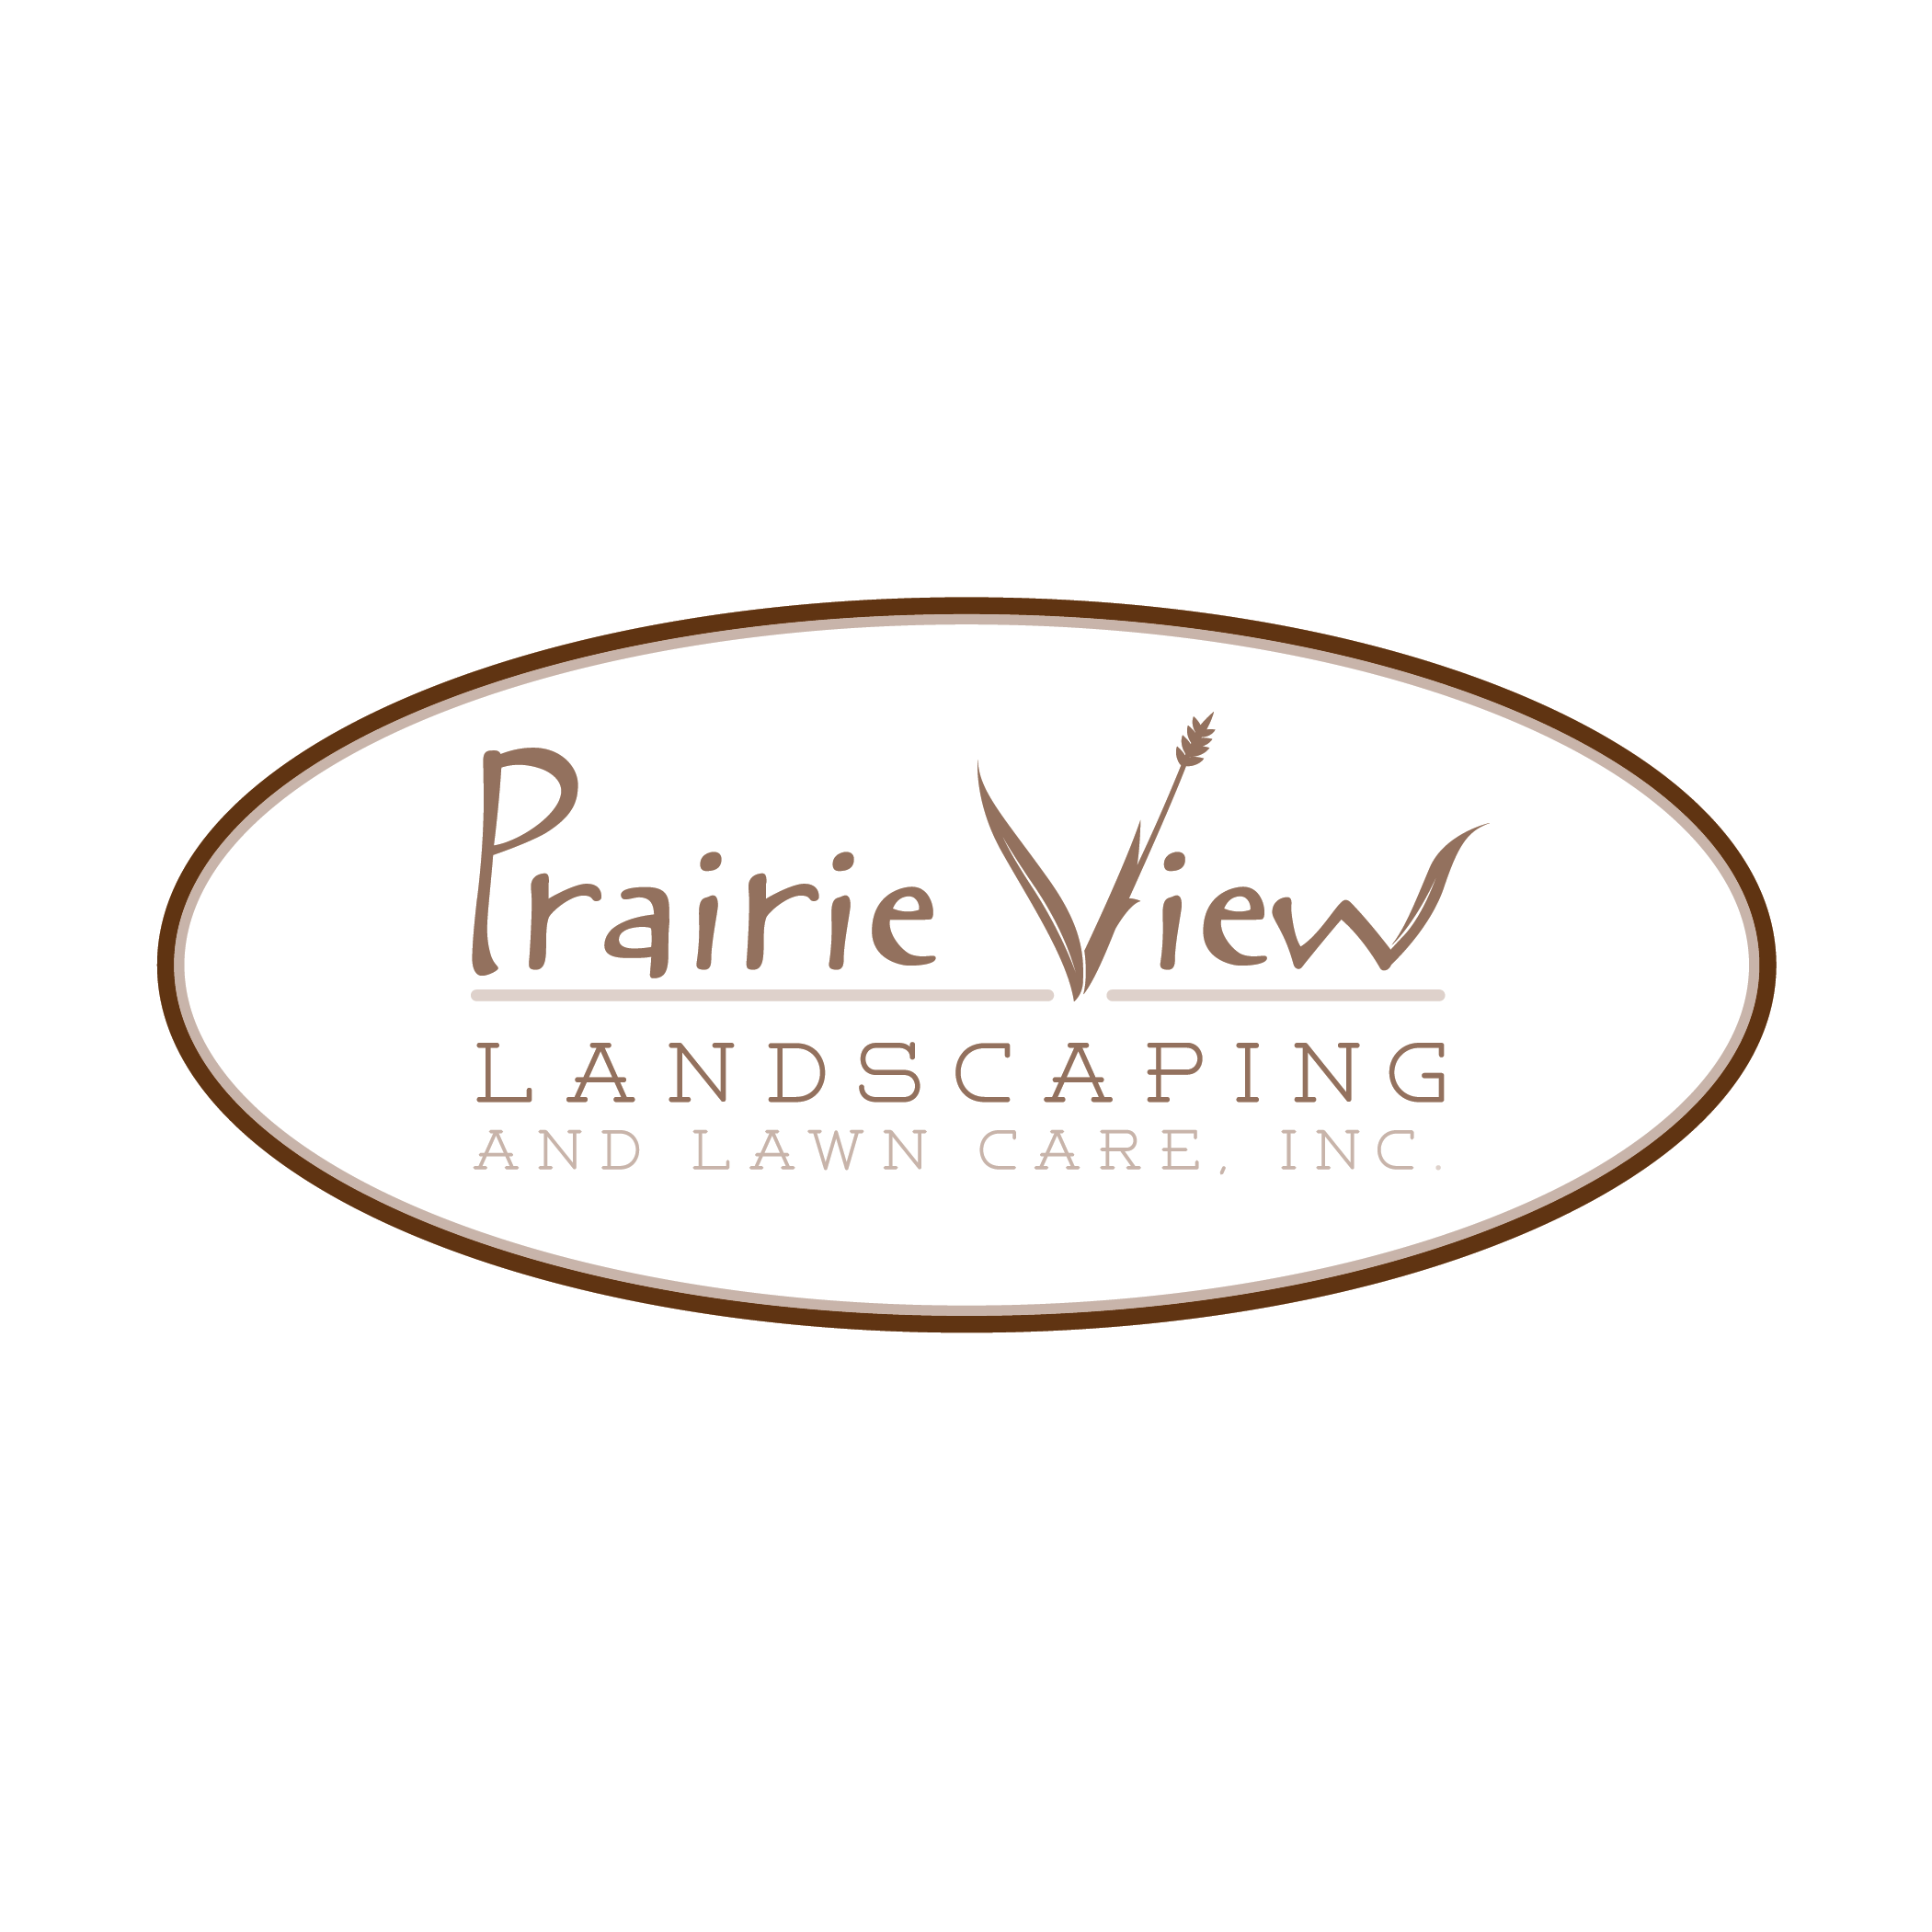 Prairie View Landscaping and Lawn Care Inc